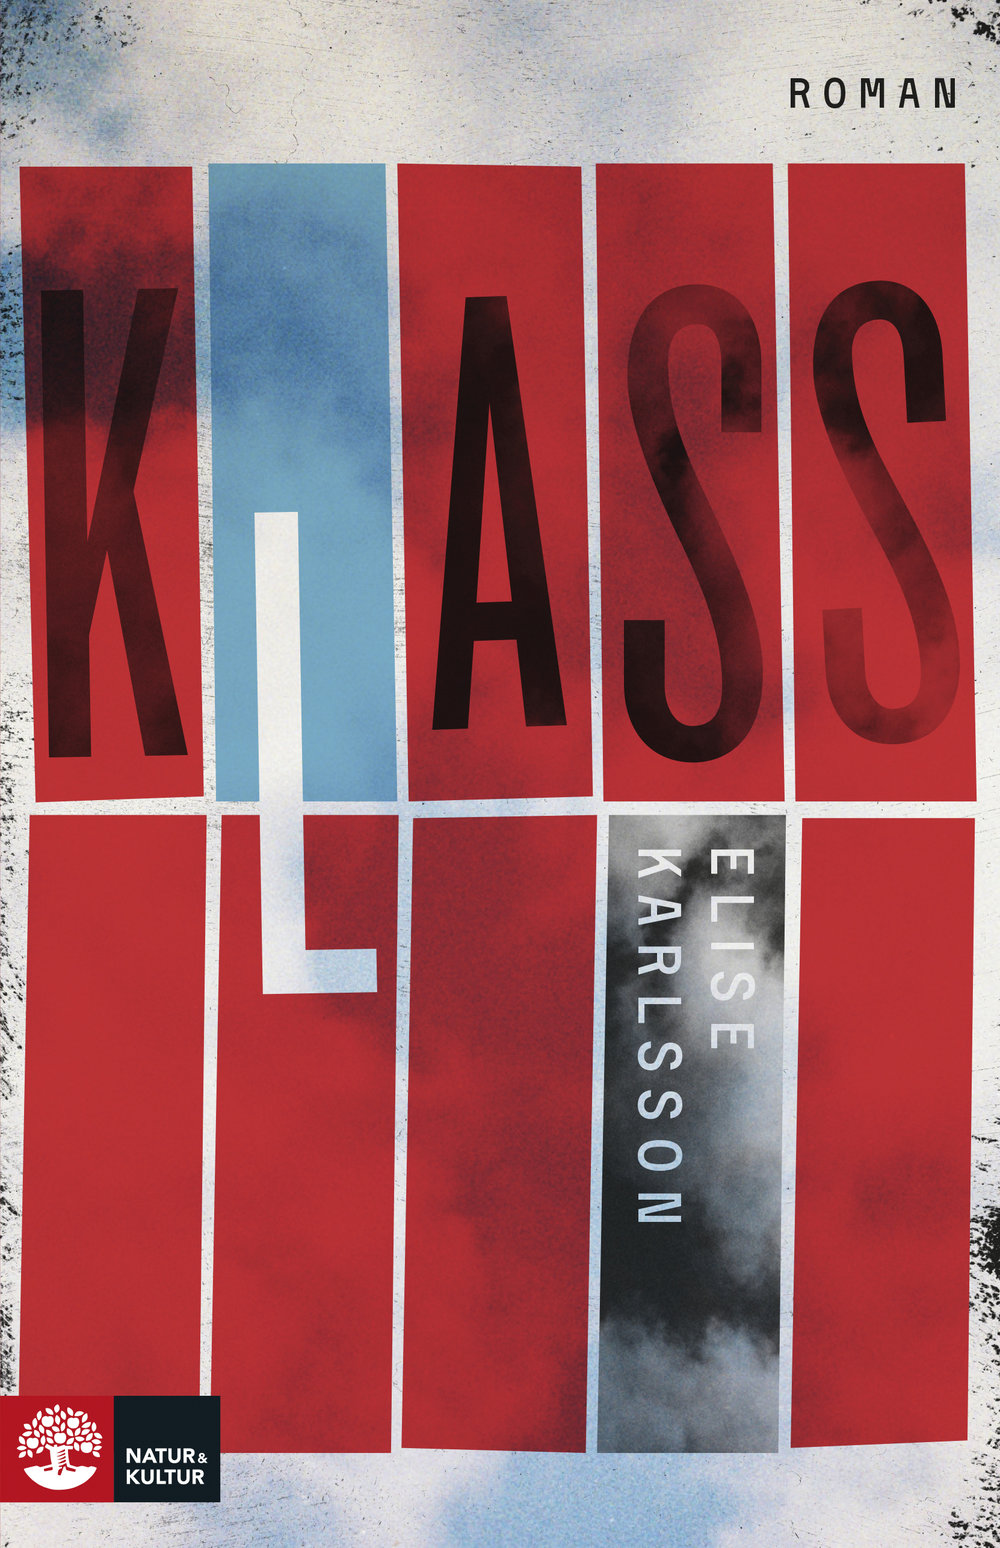 Copy of Klass